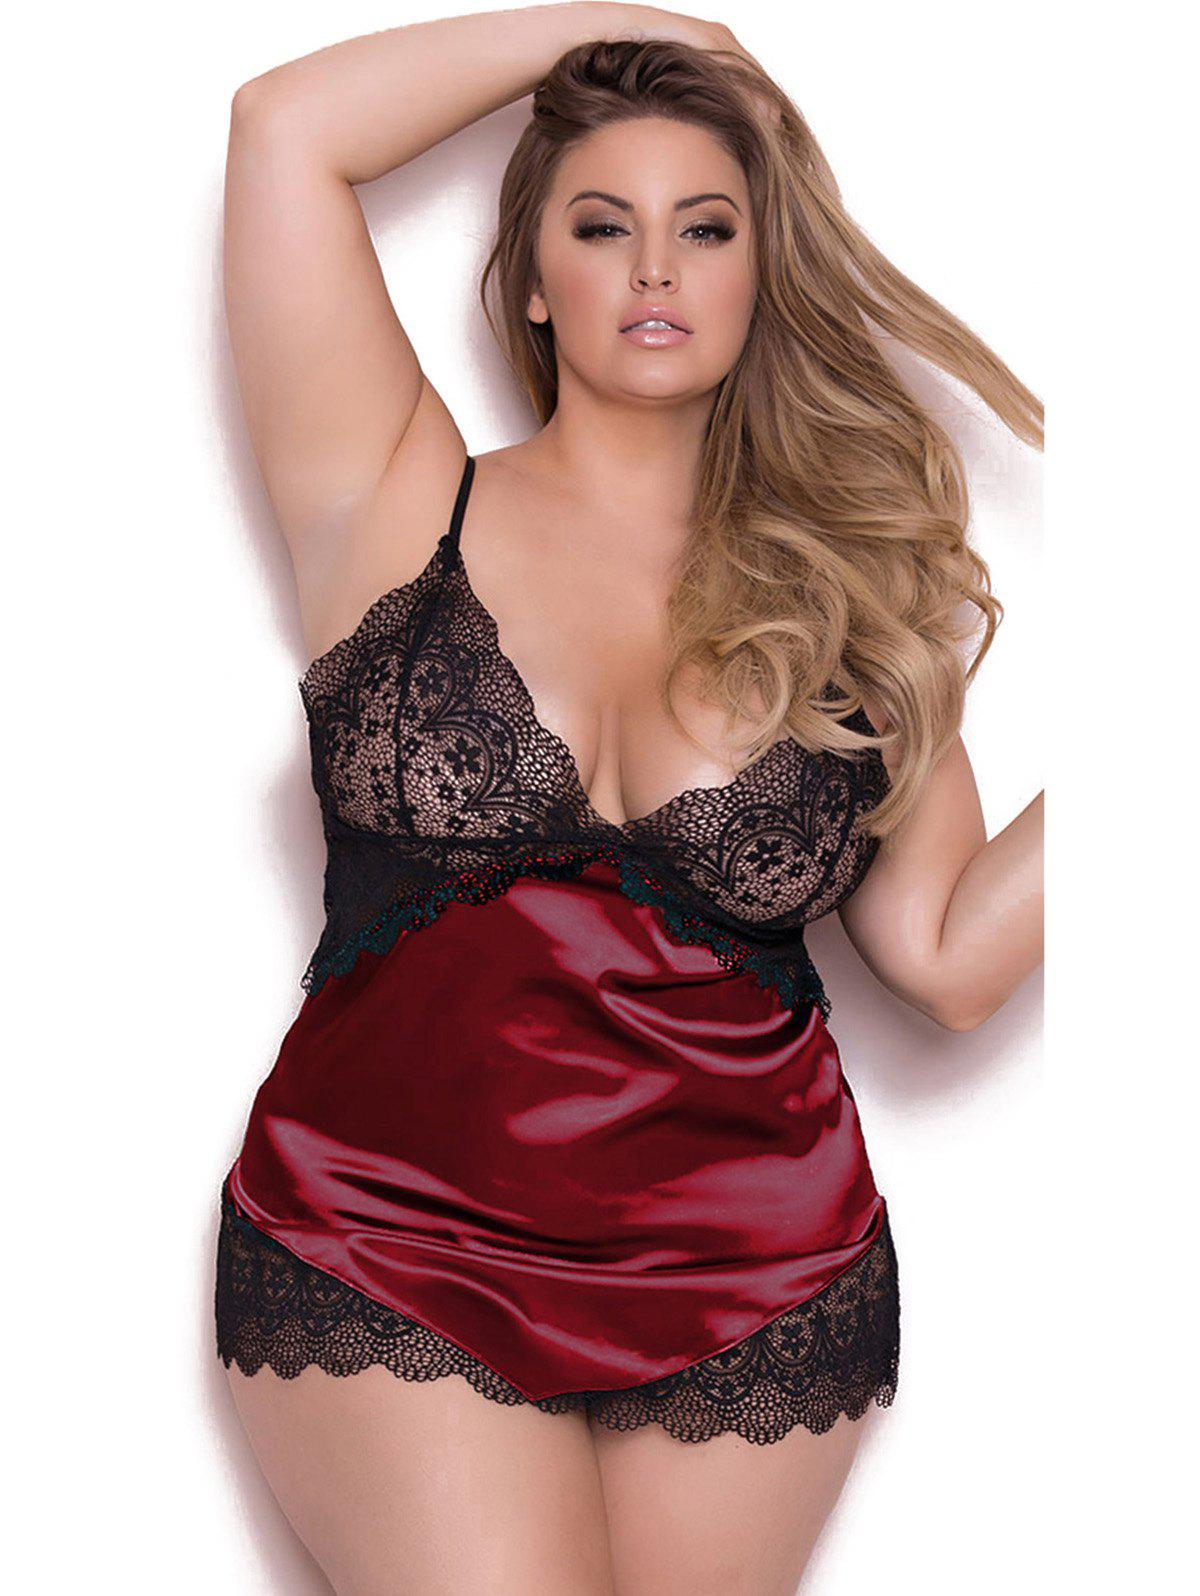 Online Adjustable Shoulder Straps Plus Size Babydoll Lingeries